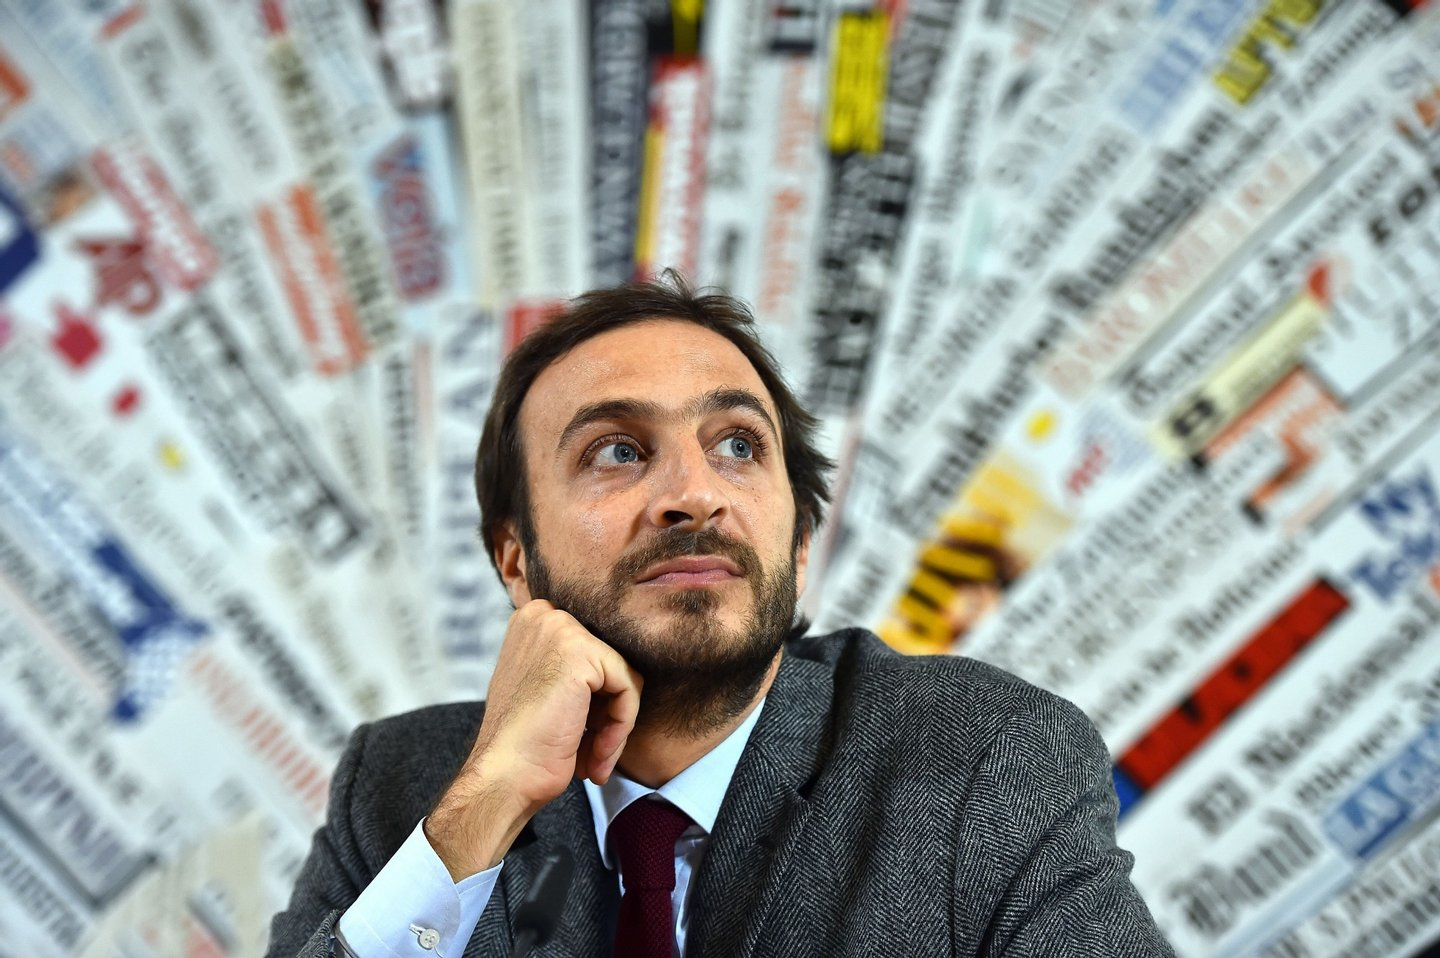 Emiliano Fittipaldi, one of two Italian journalists facing a criminal probe over leaks from the Vatican, gives a press conference on November 17, 2015 in Rome, a day after a hearing at the Vatican. AFP PHOTO / GABRIEL BOUYS (Photo credit should read GABRIEL BOUYS/AFP/Getty Images)